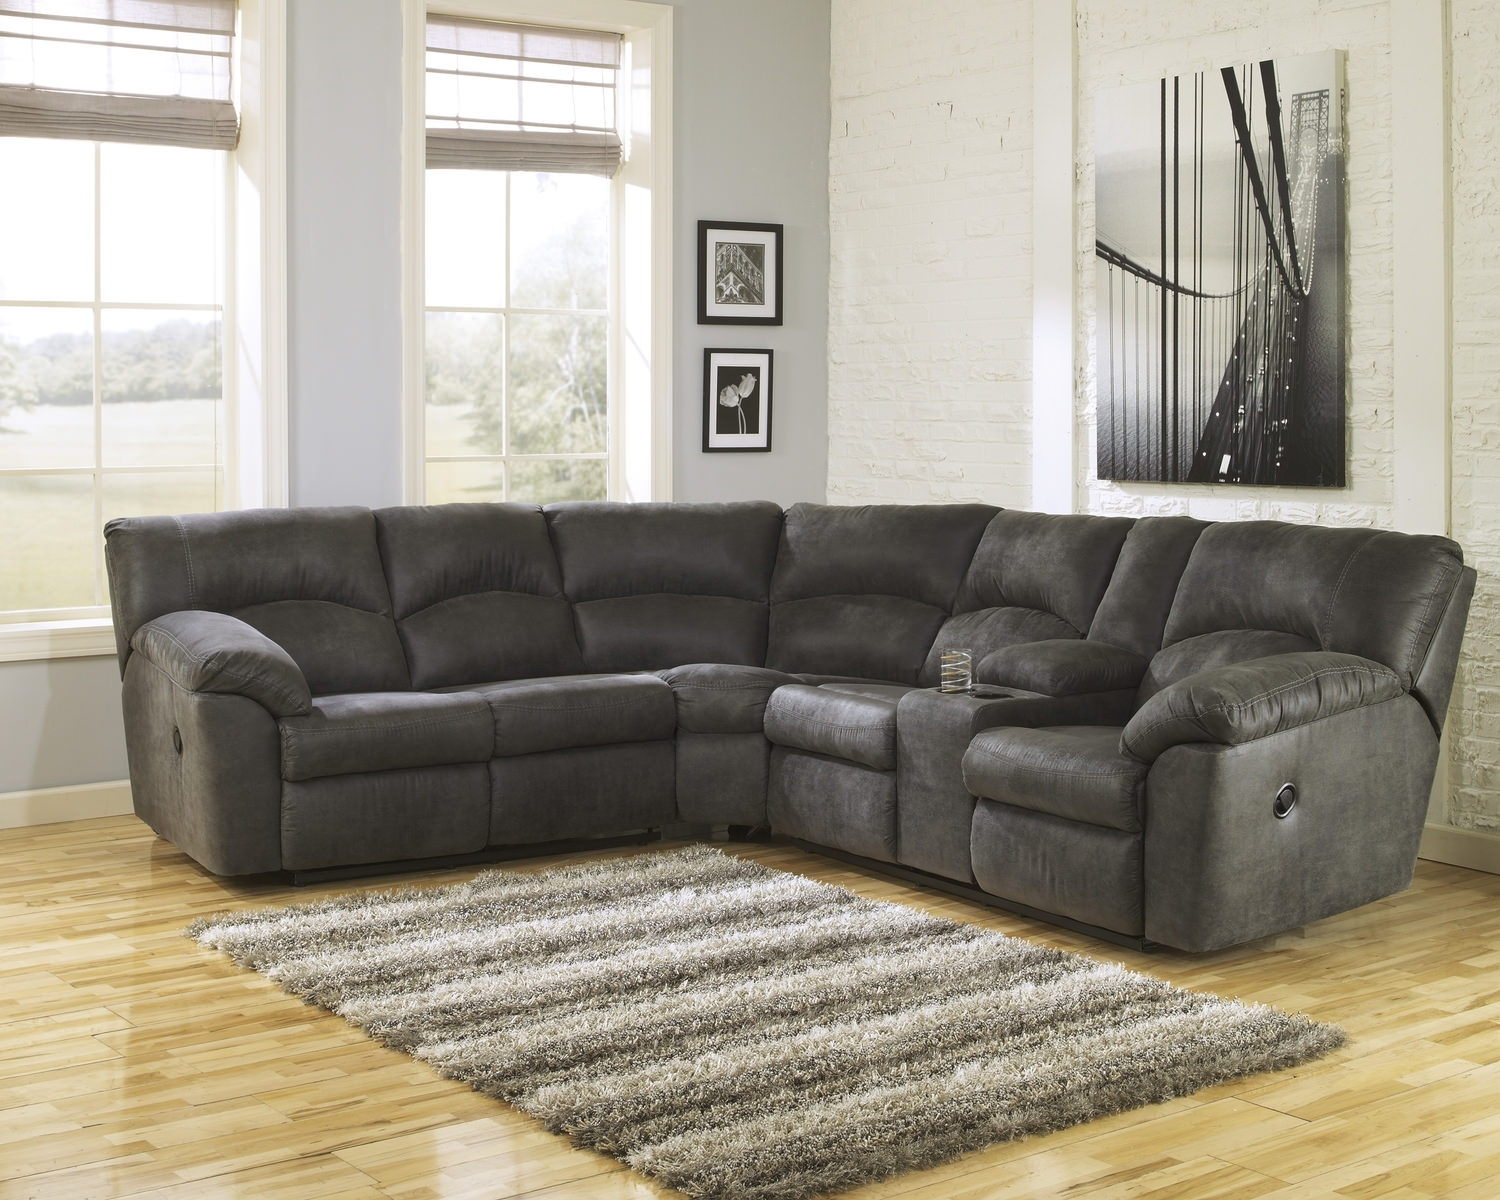 Tambo 2 Piece Reclining Sectional | Dock86 with regard to Dock 86 Sectional Sofas